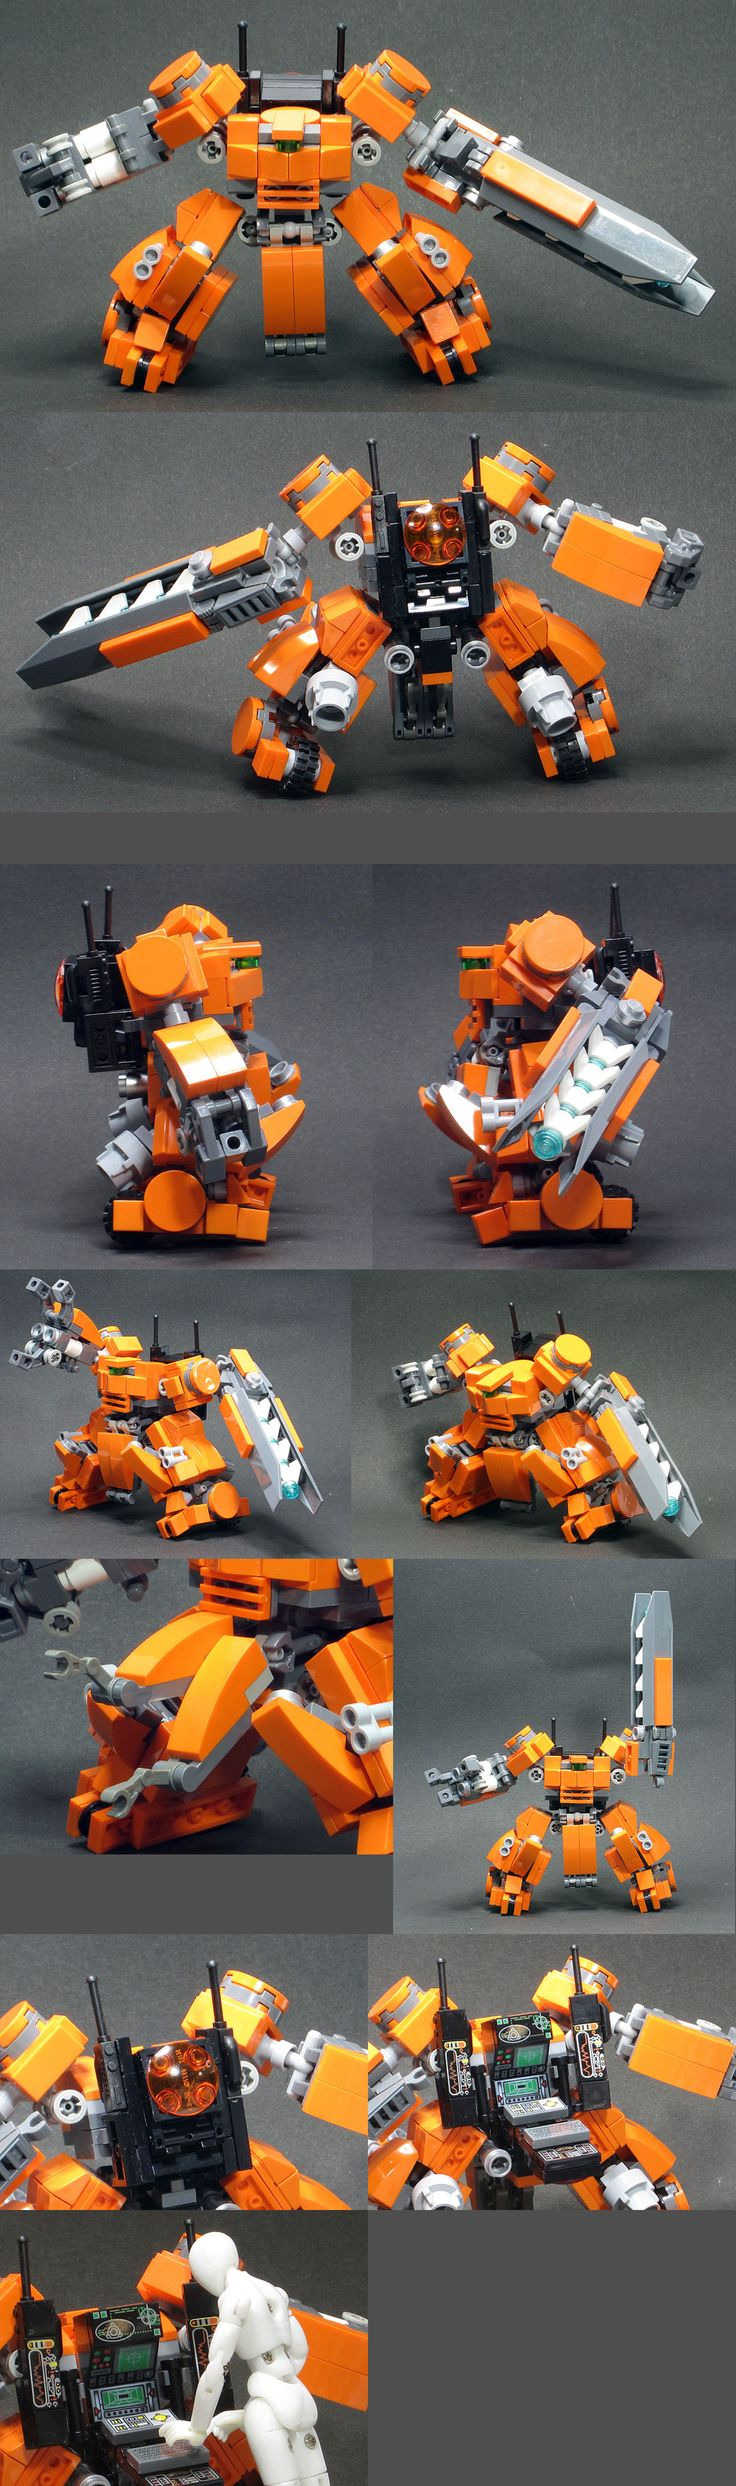 more awesome lego mechs